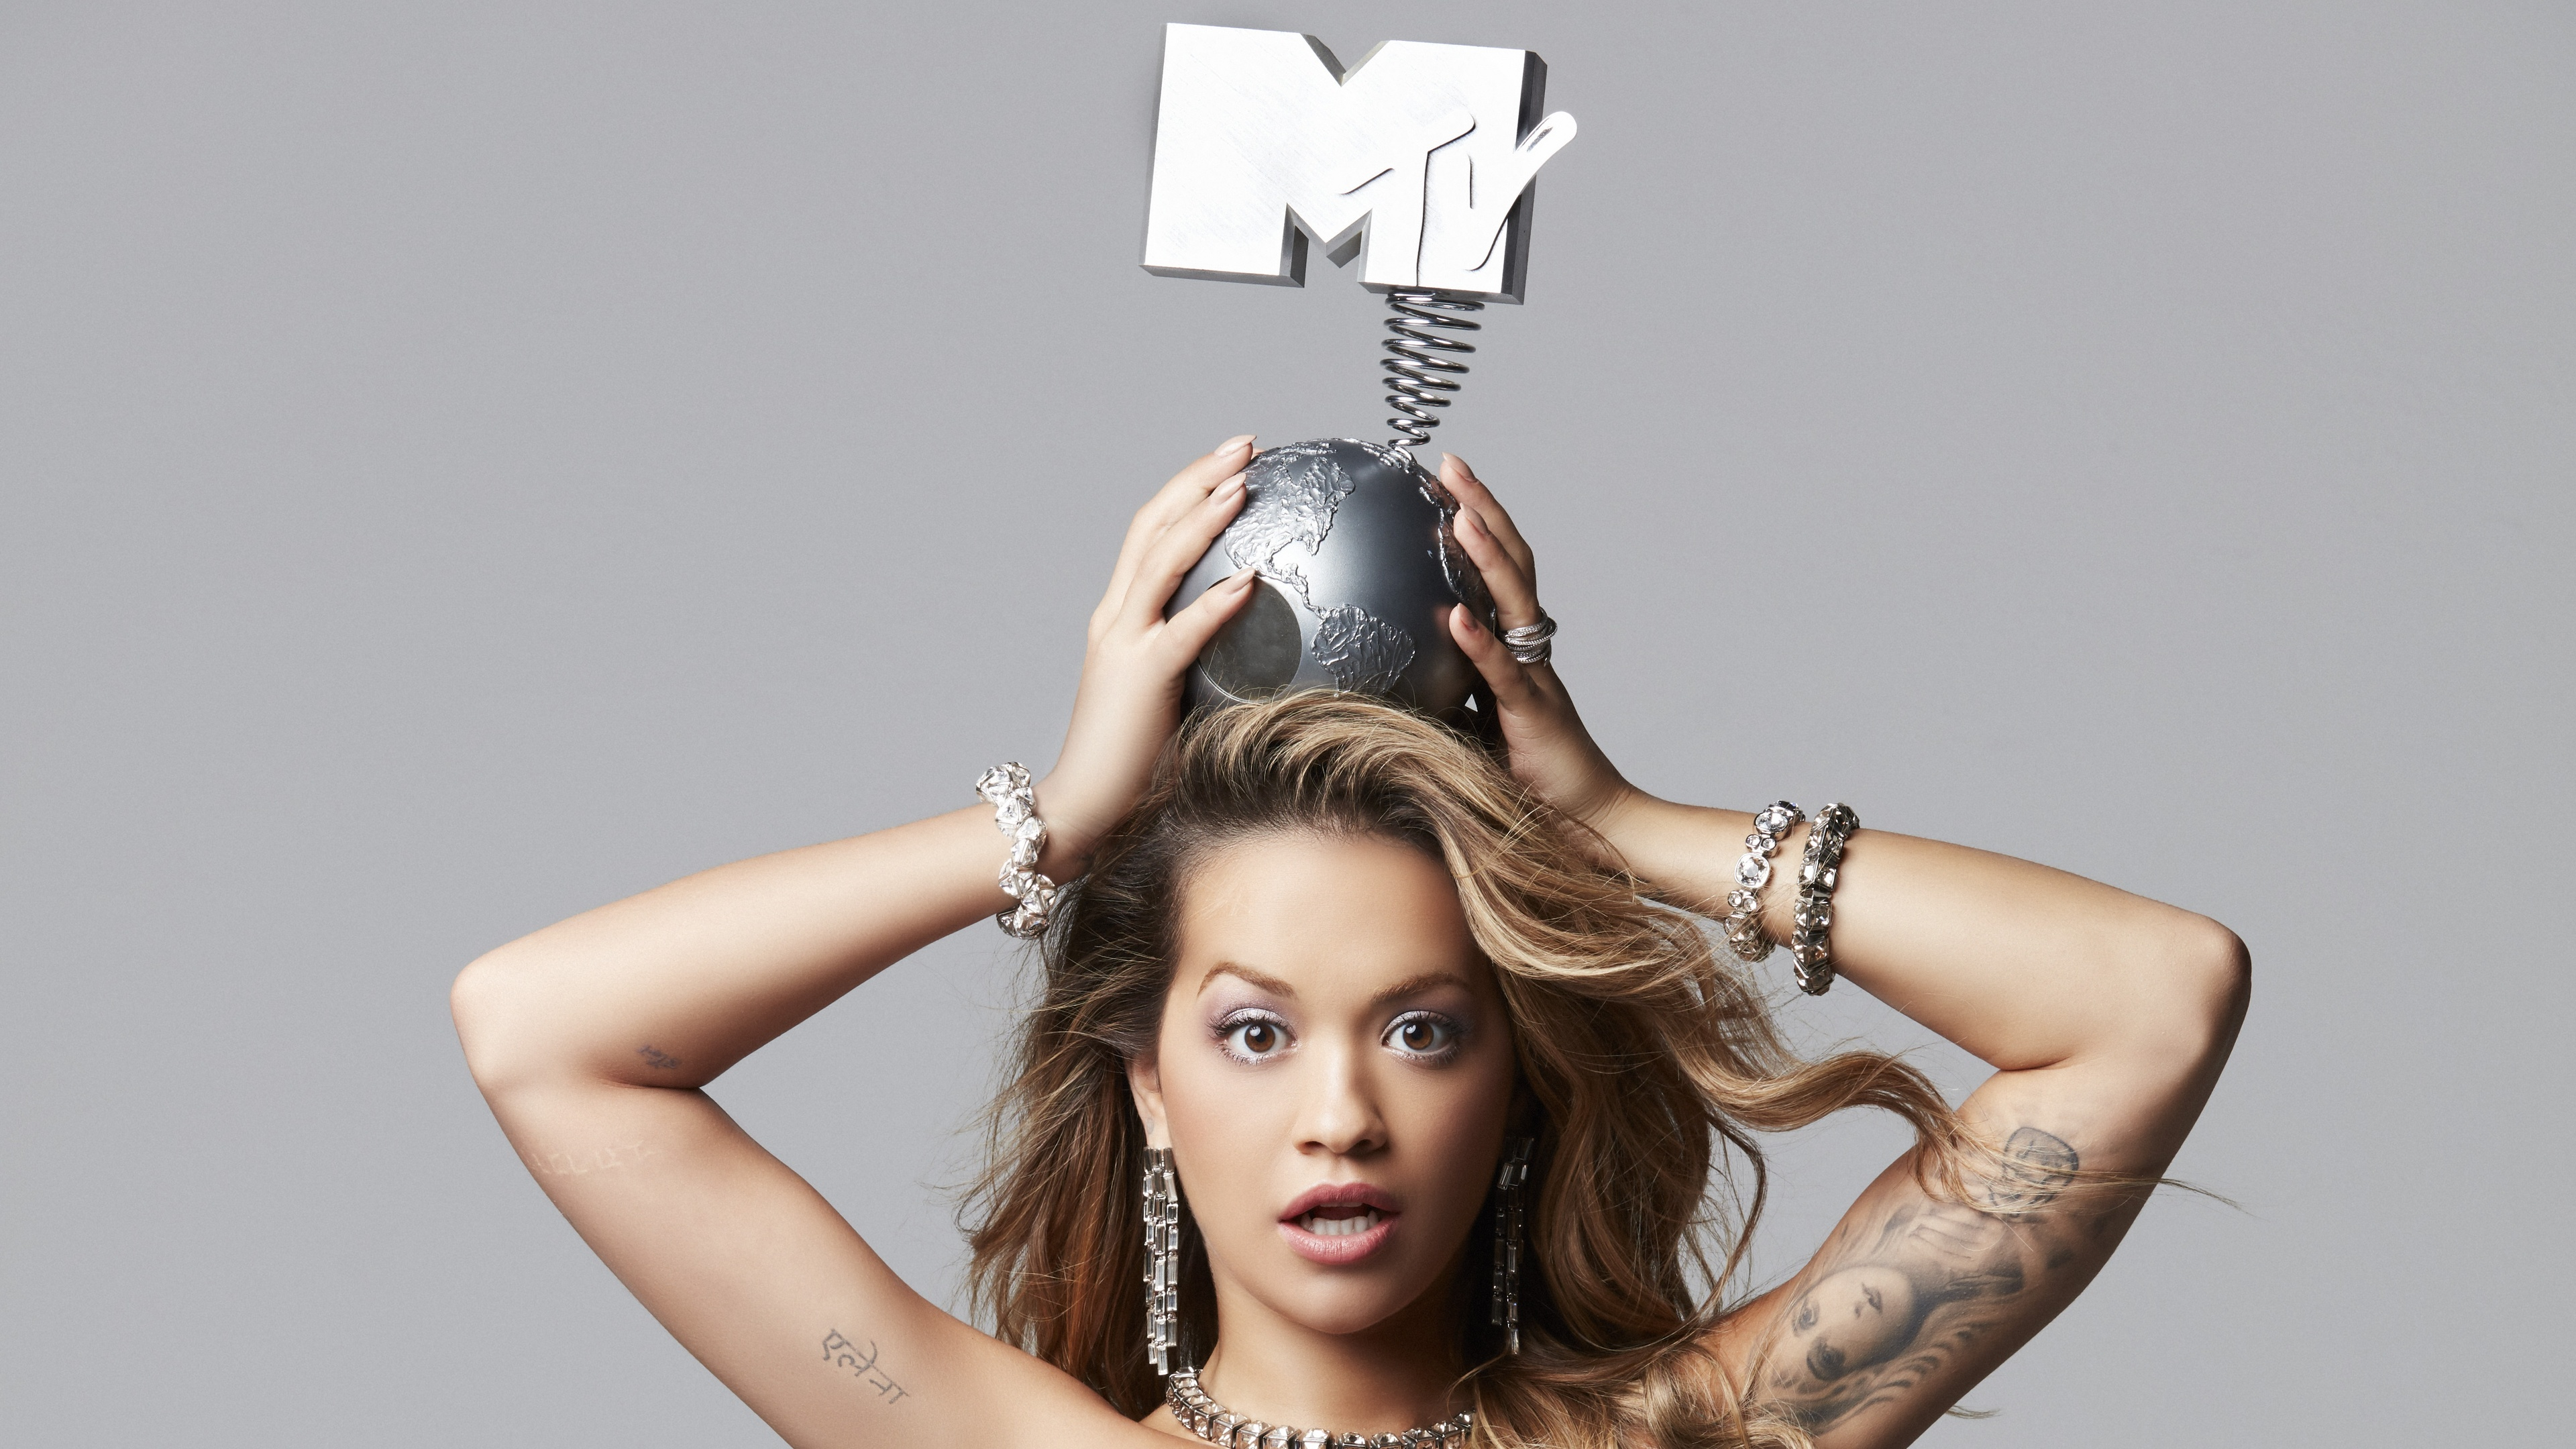 rita ora mtv award 1536949070 - Rita Ora Mtv Award - rita ora wallpapers, music wallpapers, hd-wallpapers, girls wallpapers, celebrities wallpapers, 5k wallpapers, 4k-wallpapers